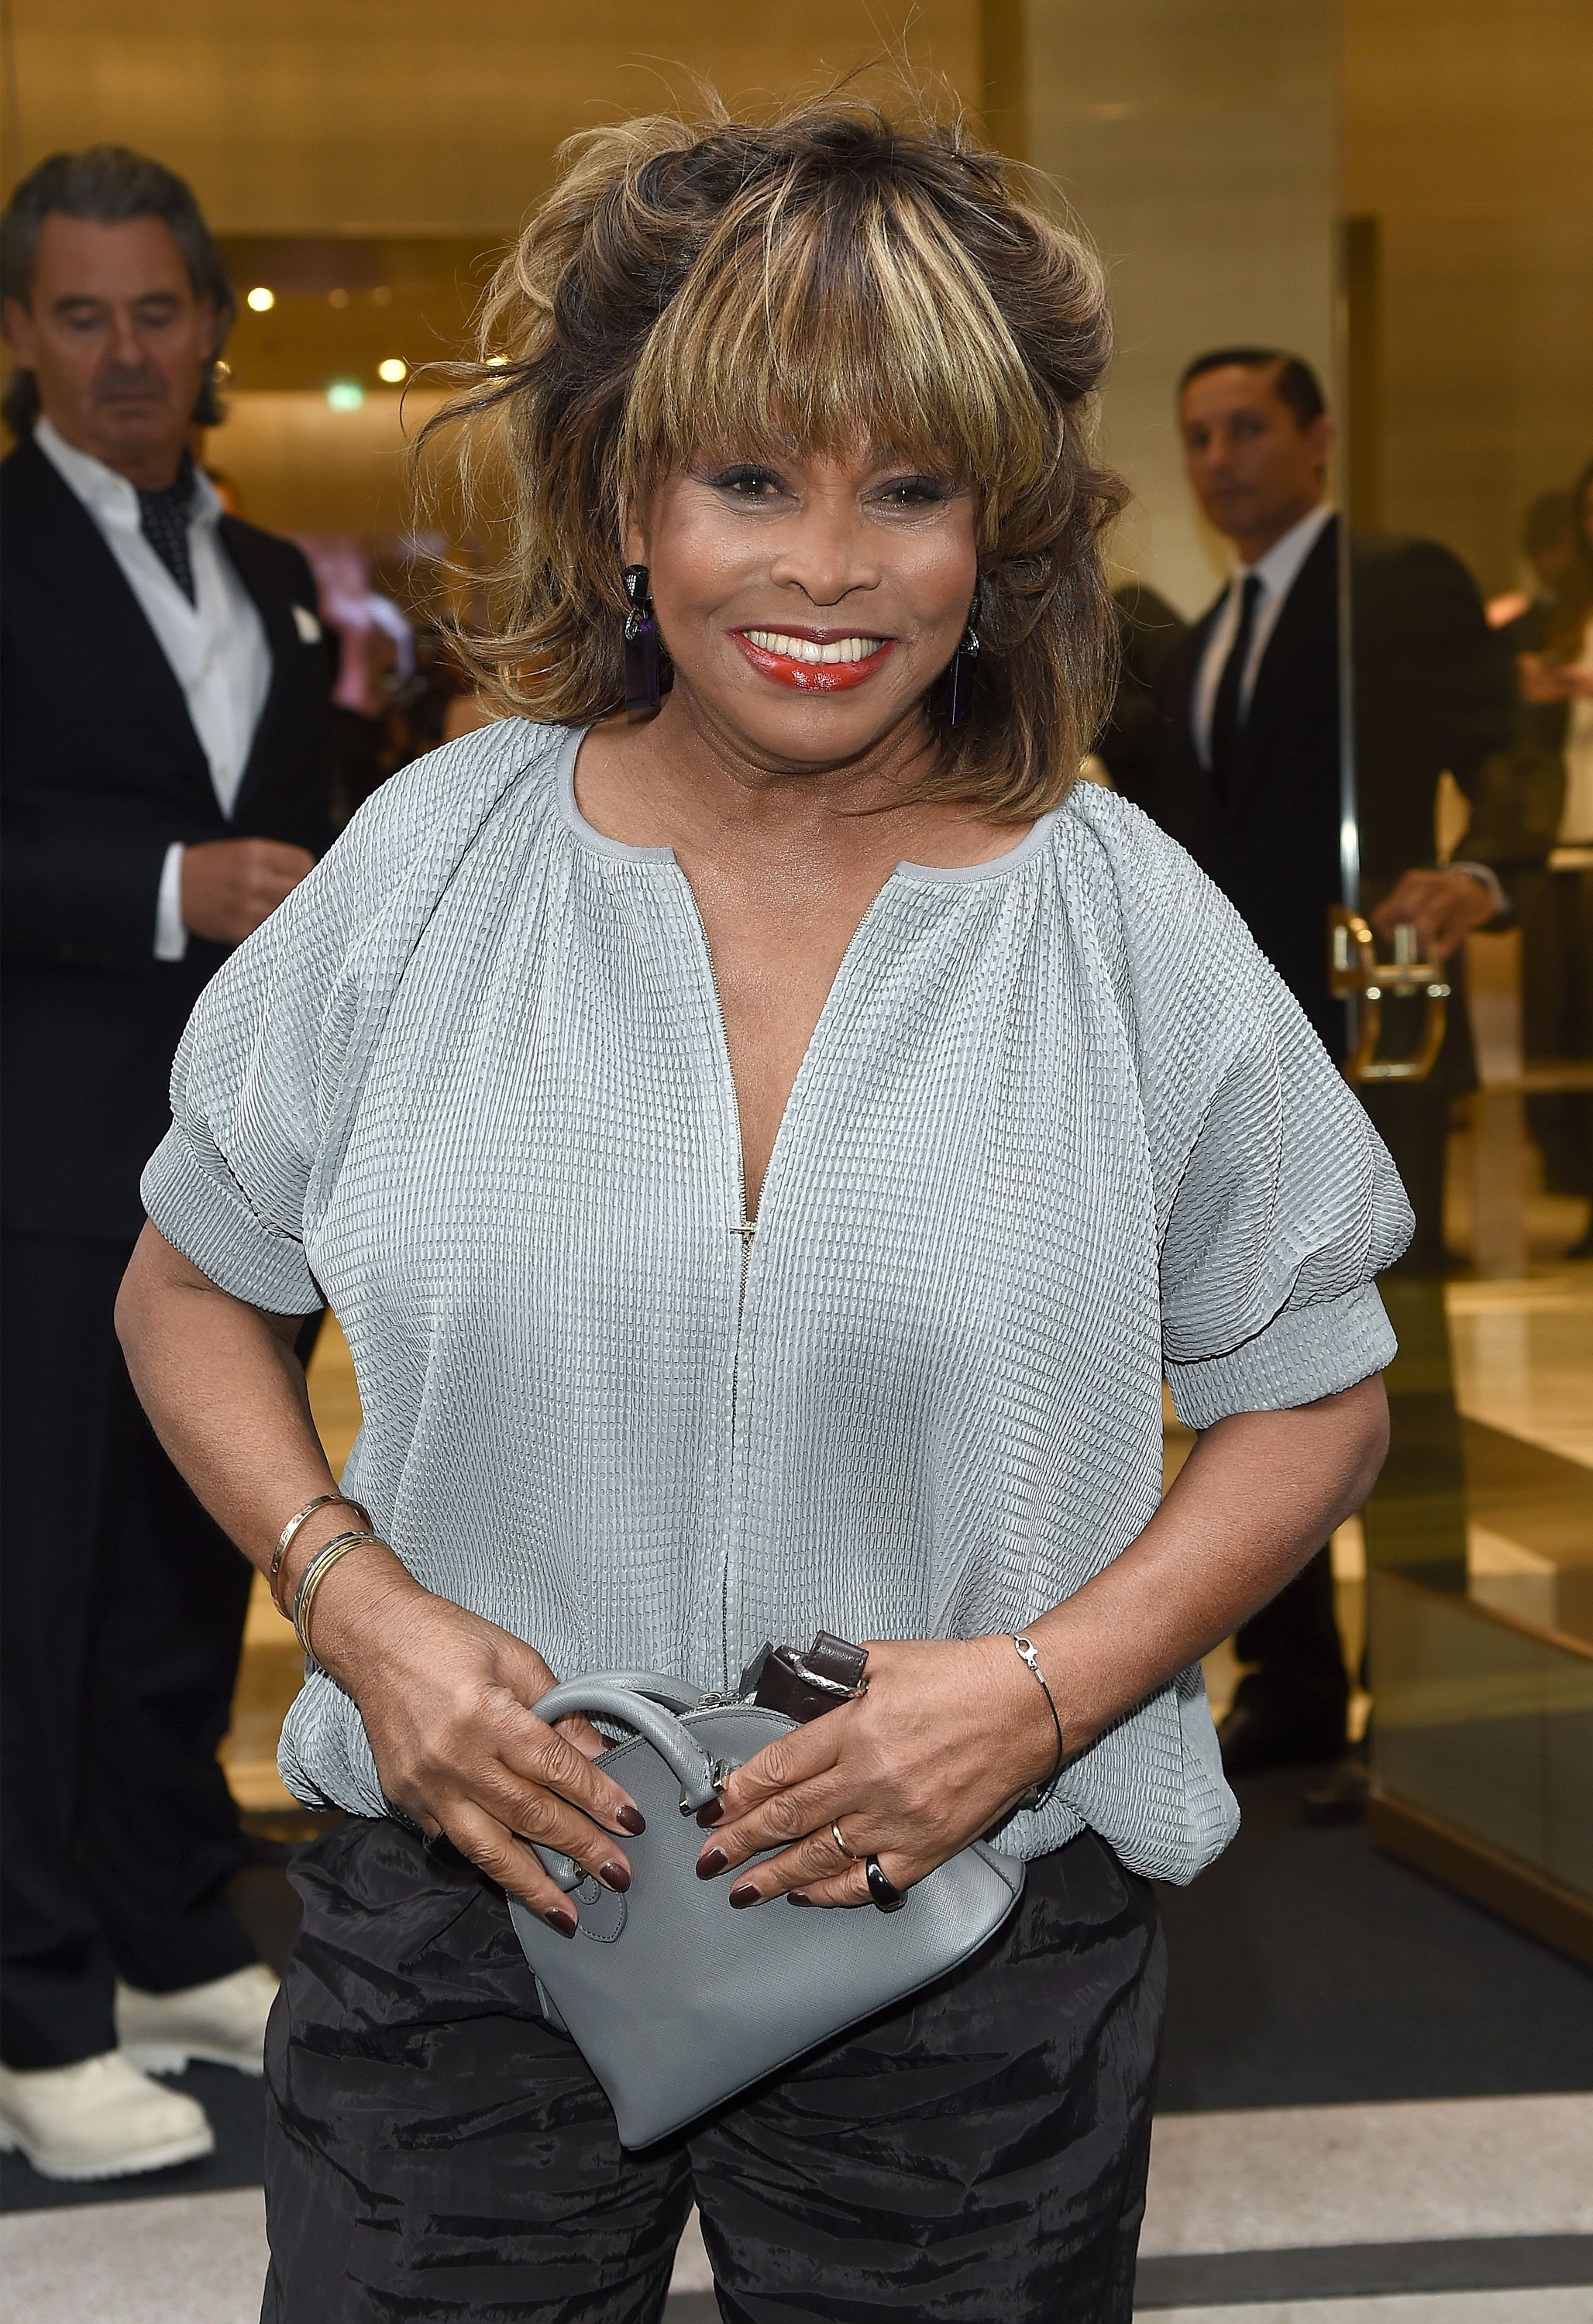 Tina Turner at the Giorgio Armani 40th Anniversary Boutique Cocktail Reception on April 29, 2015 in Milan, Italy.   Photo: Getty Images